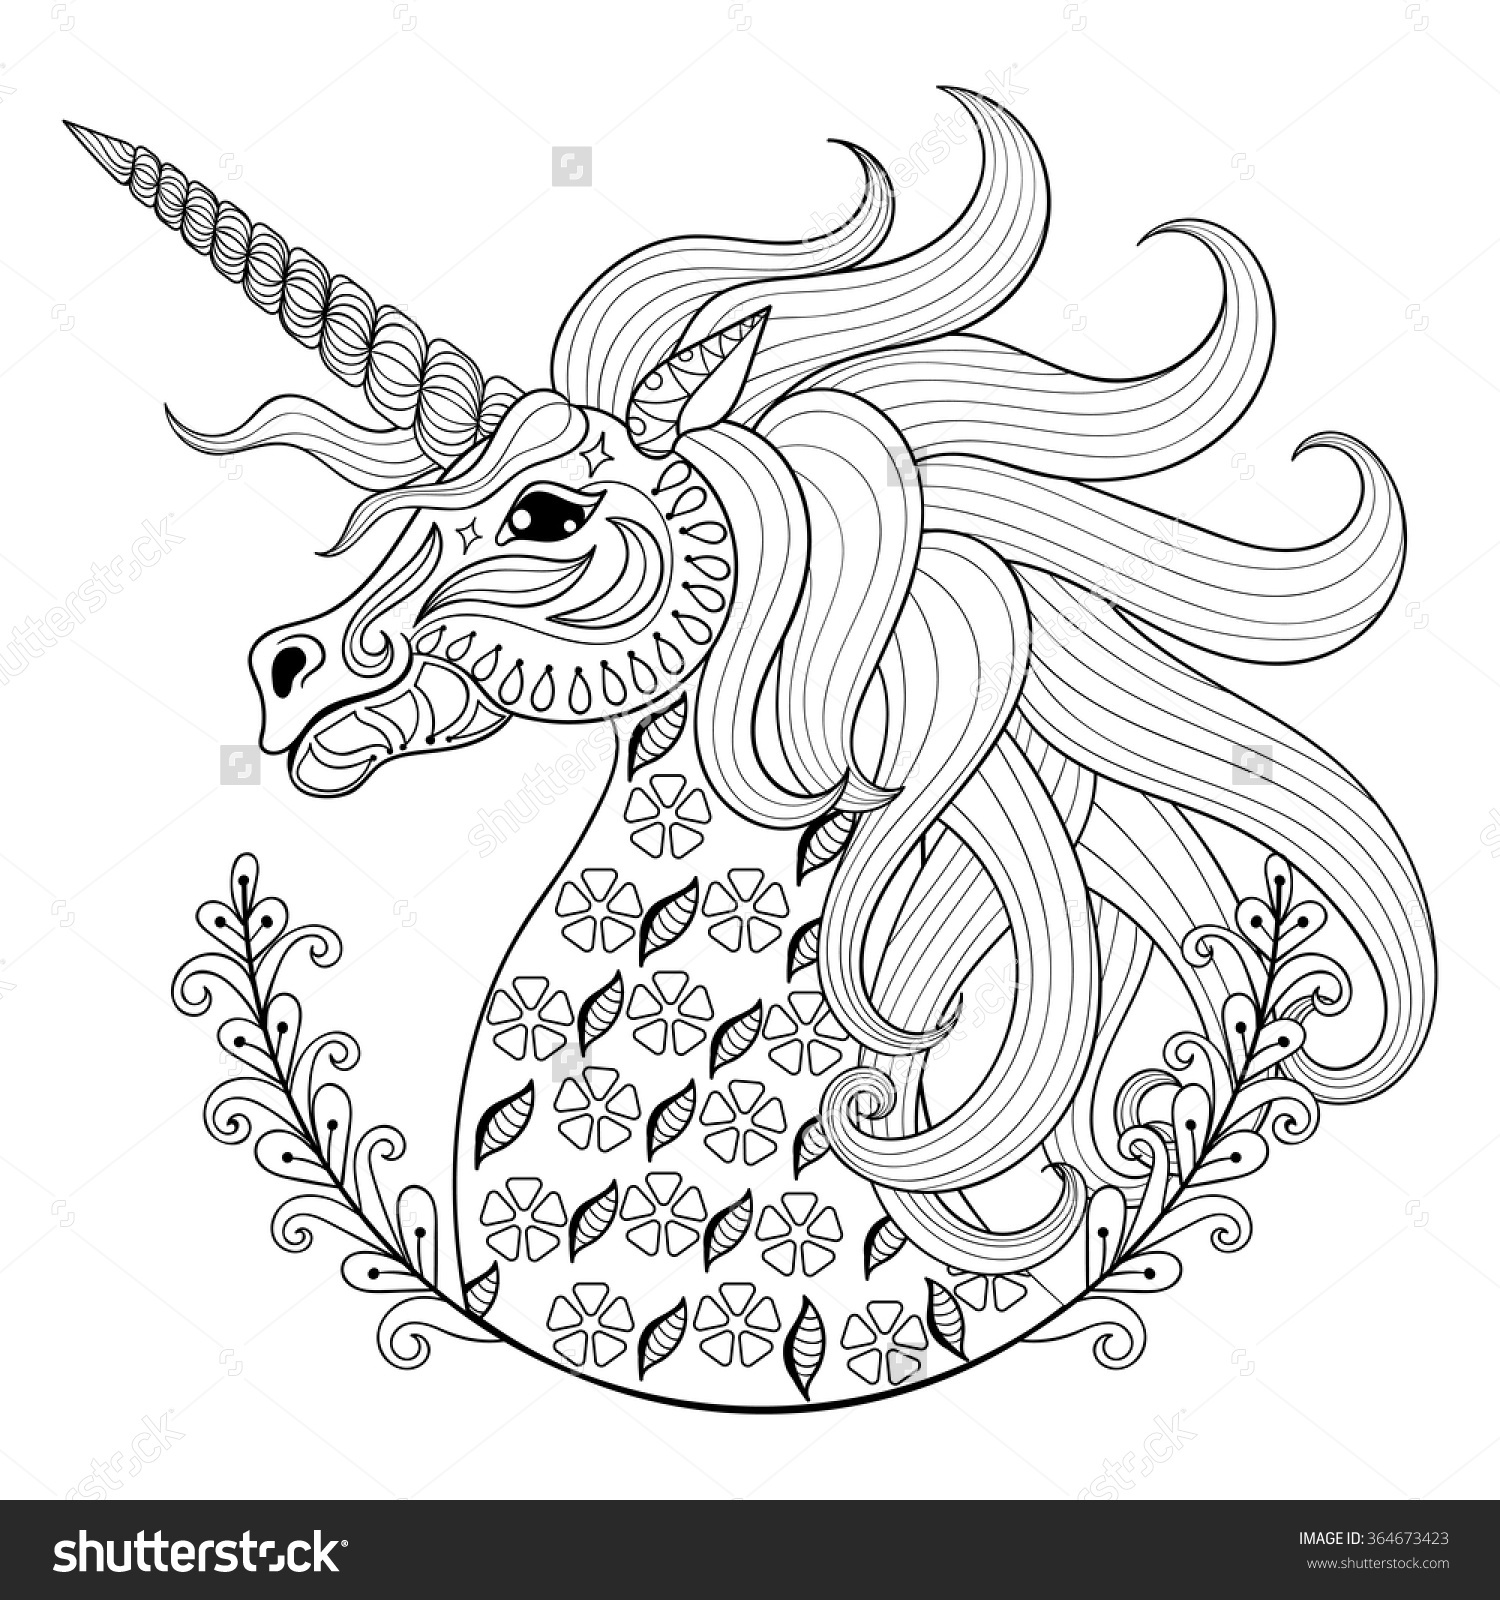 Drawn animl color Coloring Page Coloring Drawn Hand